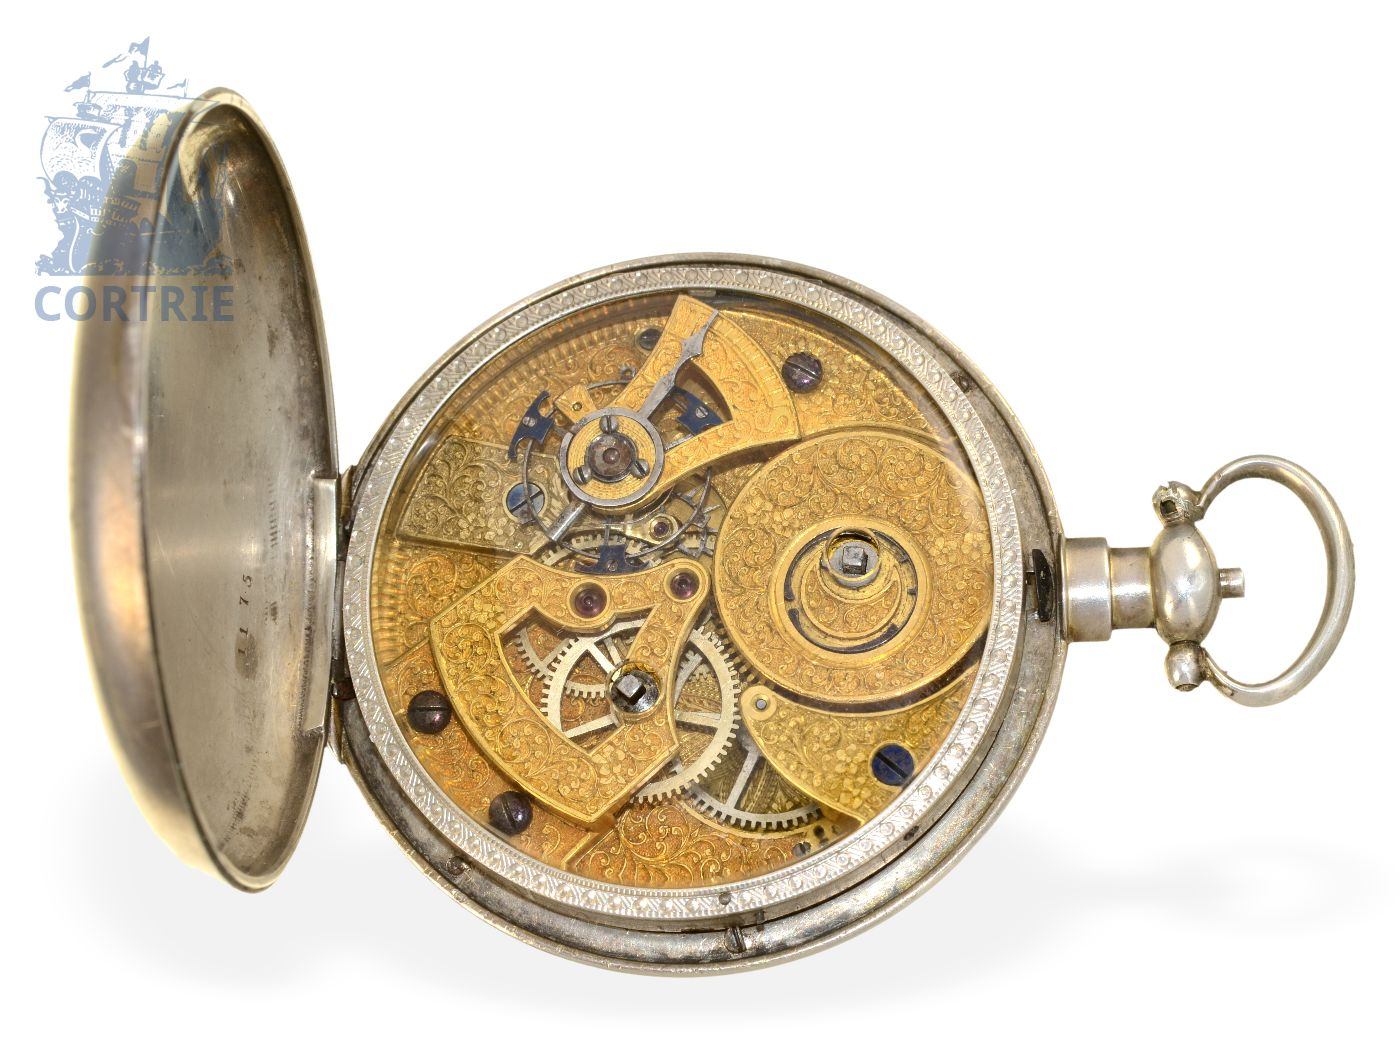 Pocket watch: very rare and big pocket watch with 8-days-movement, duplex escapement and Chinese signature, made for Chinese market, attributed to Piguet & Meylan, ca. 1840-